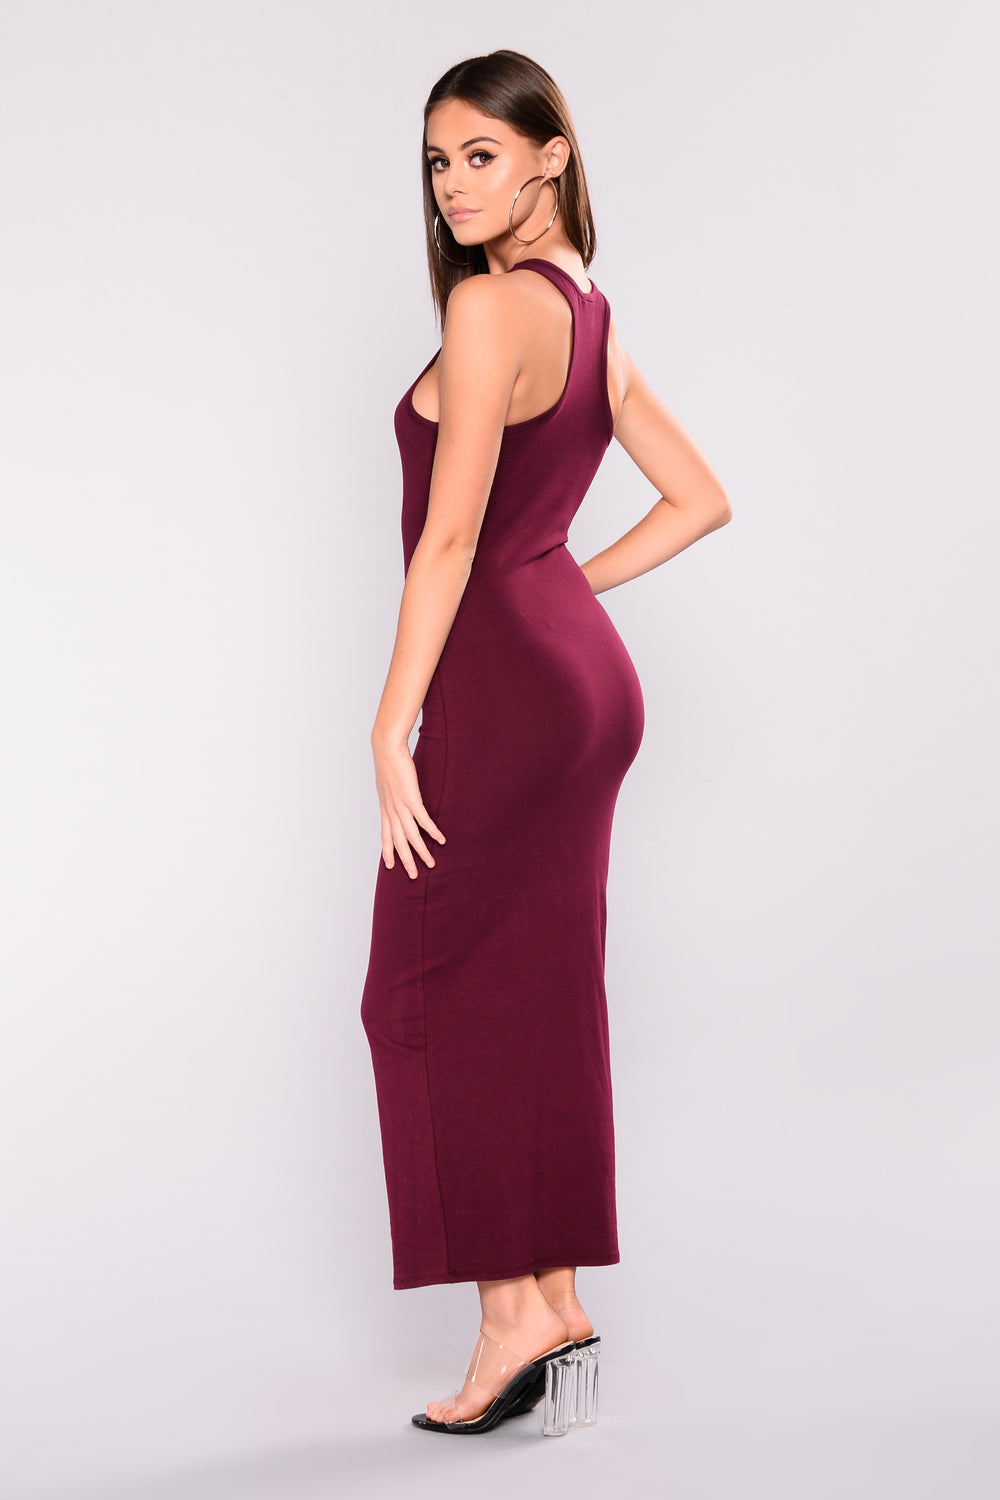 Catch Needs Midi Dress - Wine